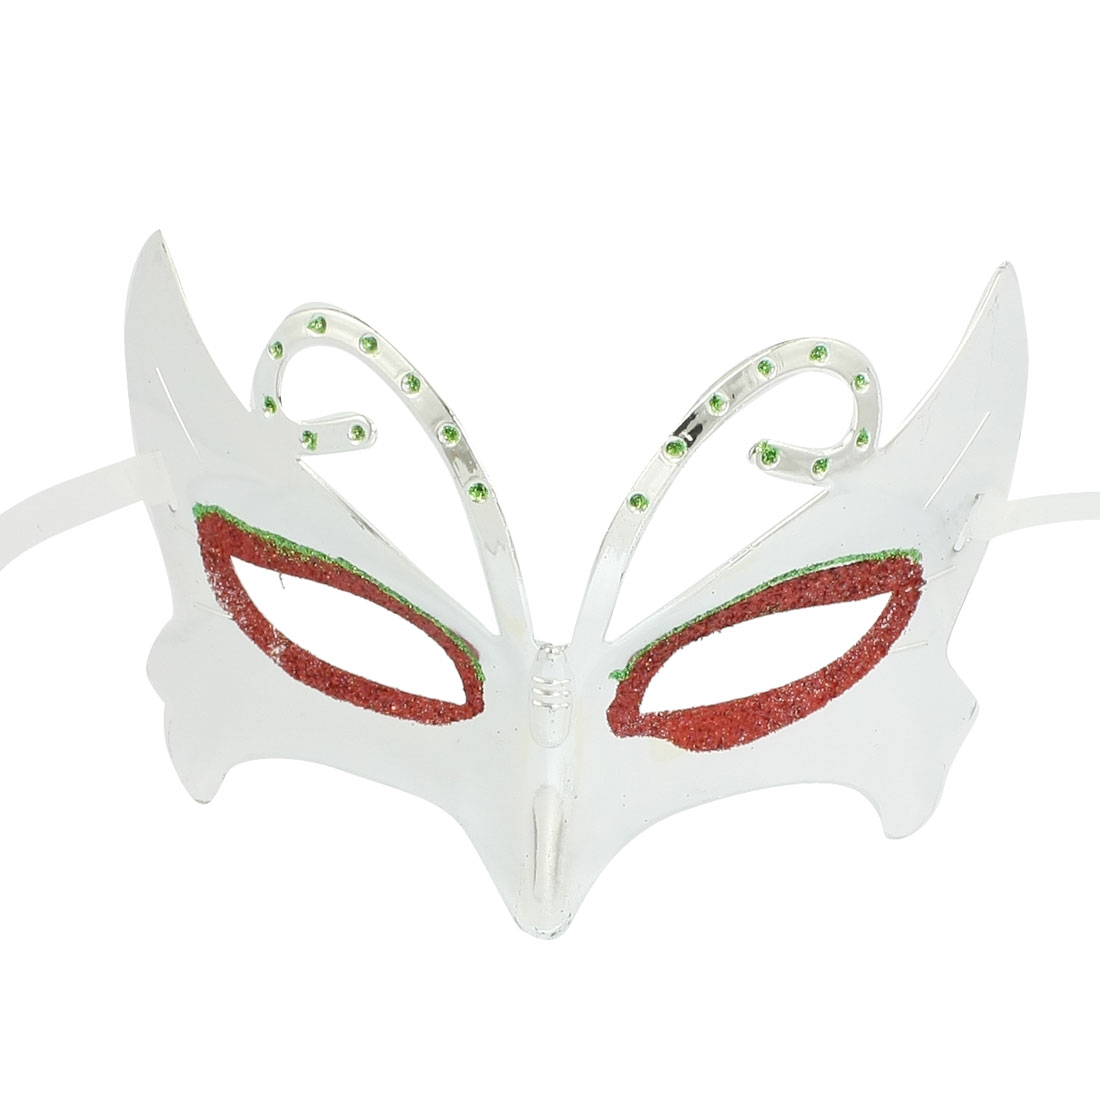 Glittery Powder Red Eyes Decor White Self Tie Party Eye Mask Silver Tone